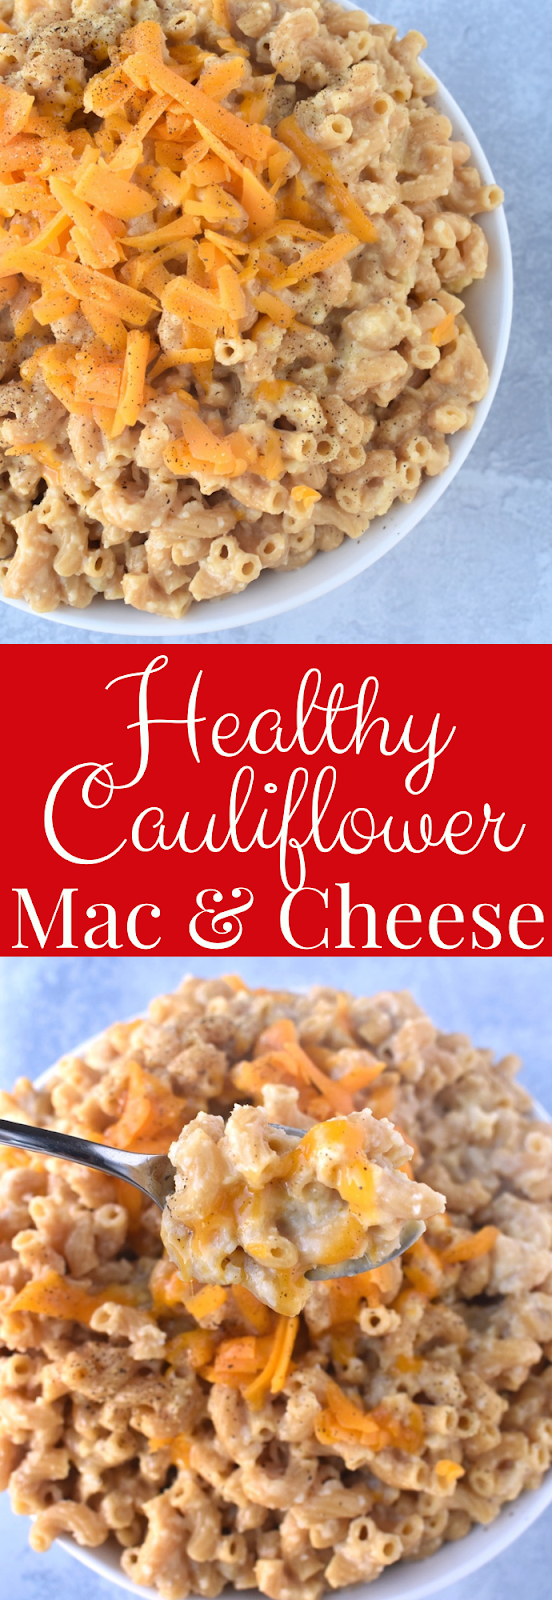 Healthy Cauliflower Mac and Cheese recipe